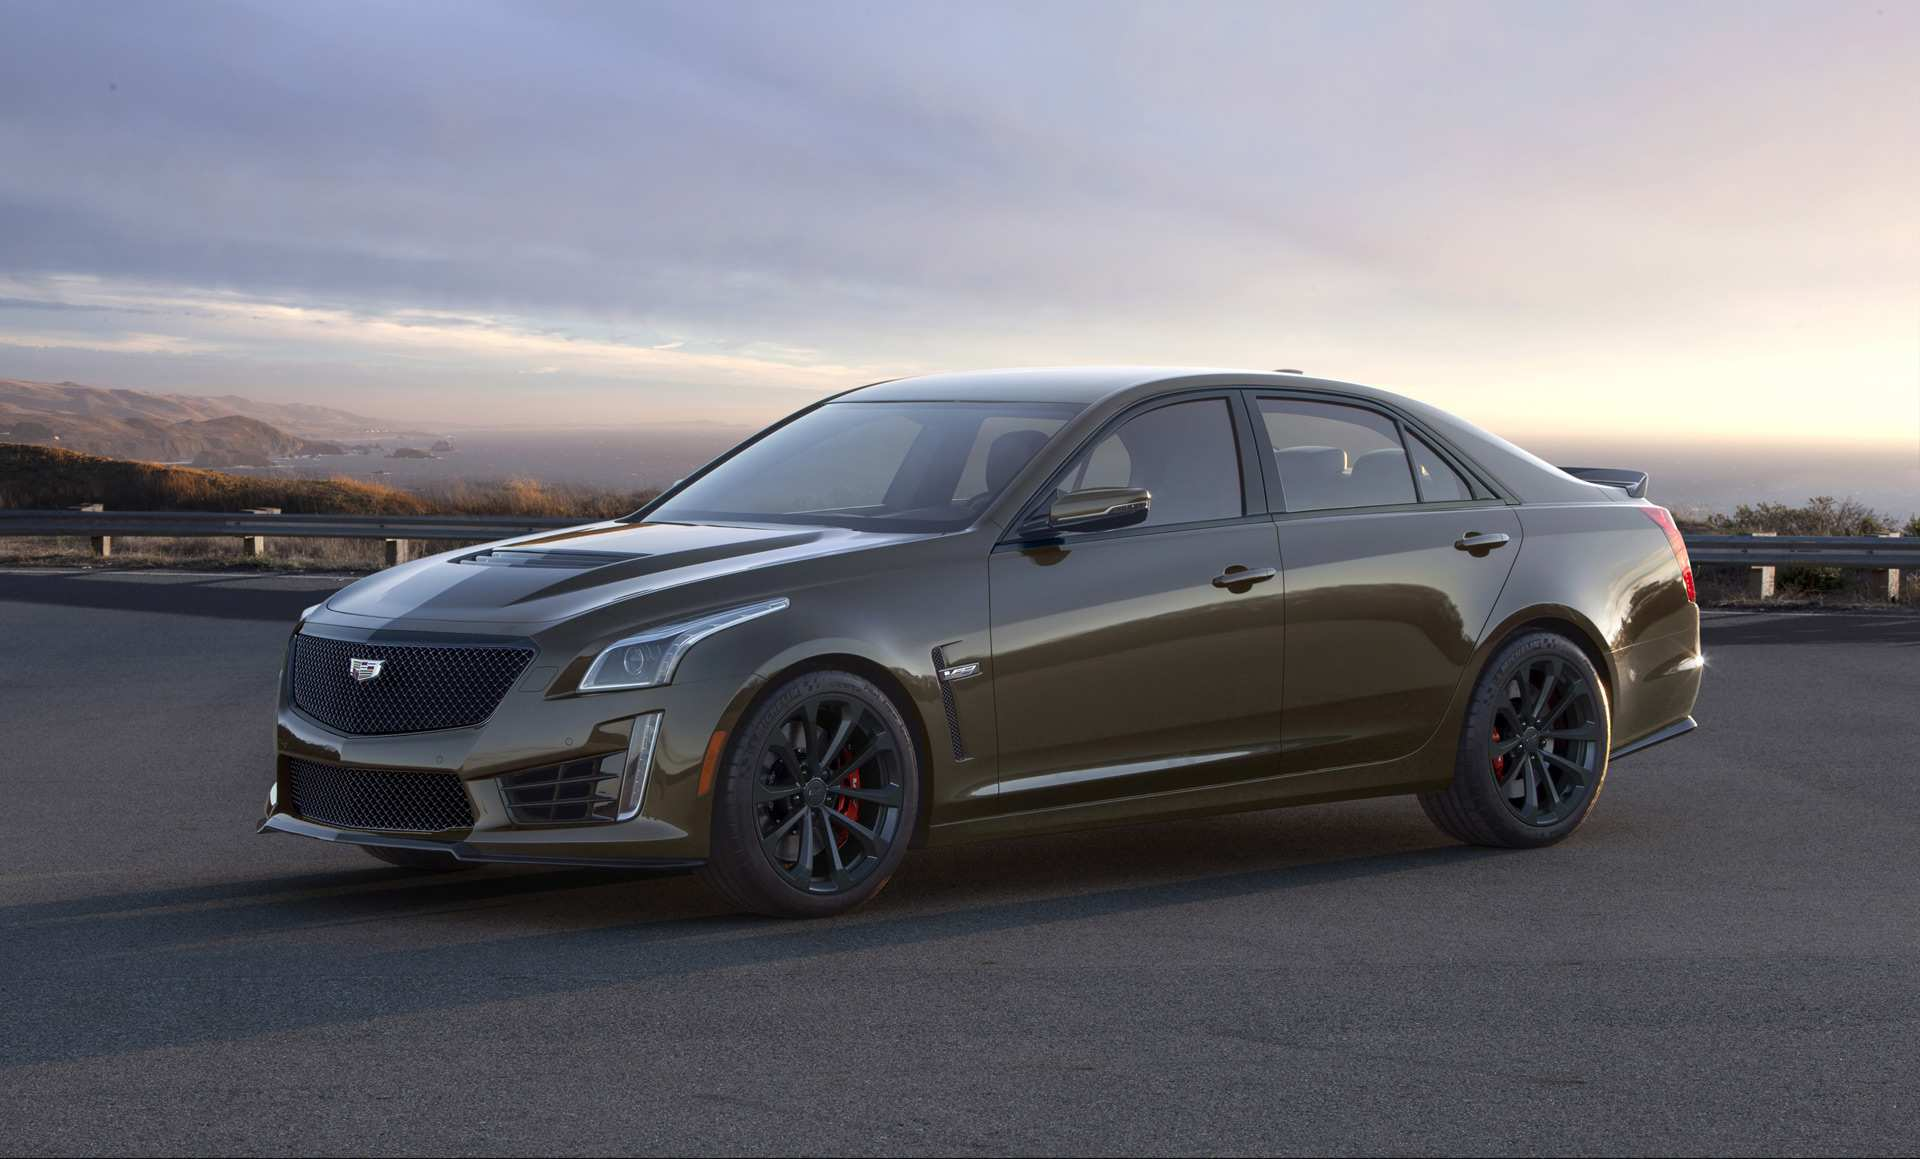 27 Gallery of 2019 Cadillac Ct4 Performance and New Engine with 2019 Cadillac Ct4